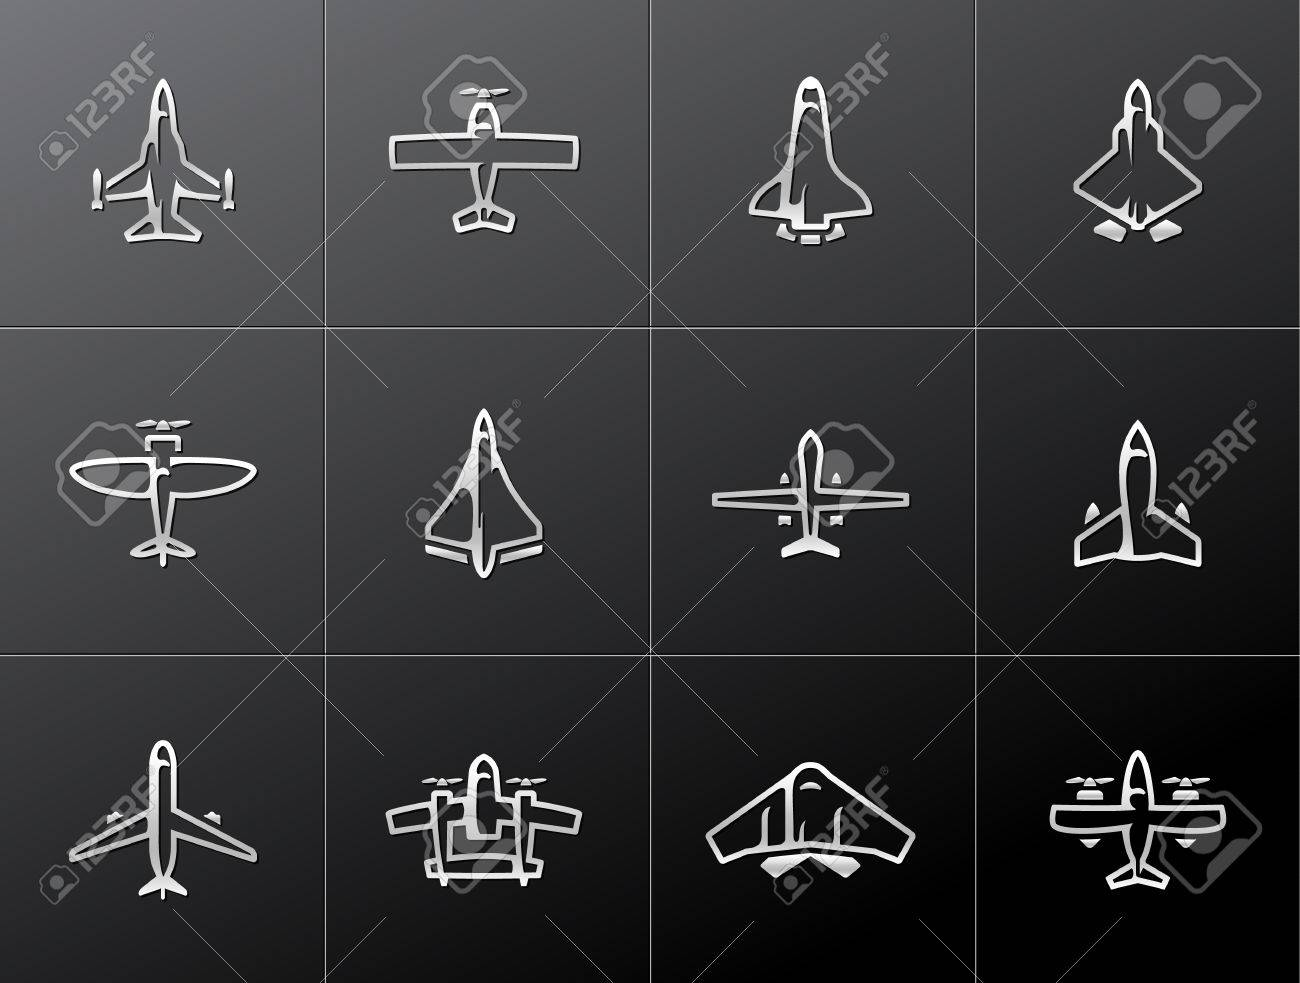 Airplane silhouette icons in metallic style. EPS 10. Stock Vector - 23775249